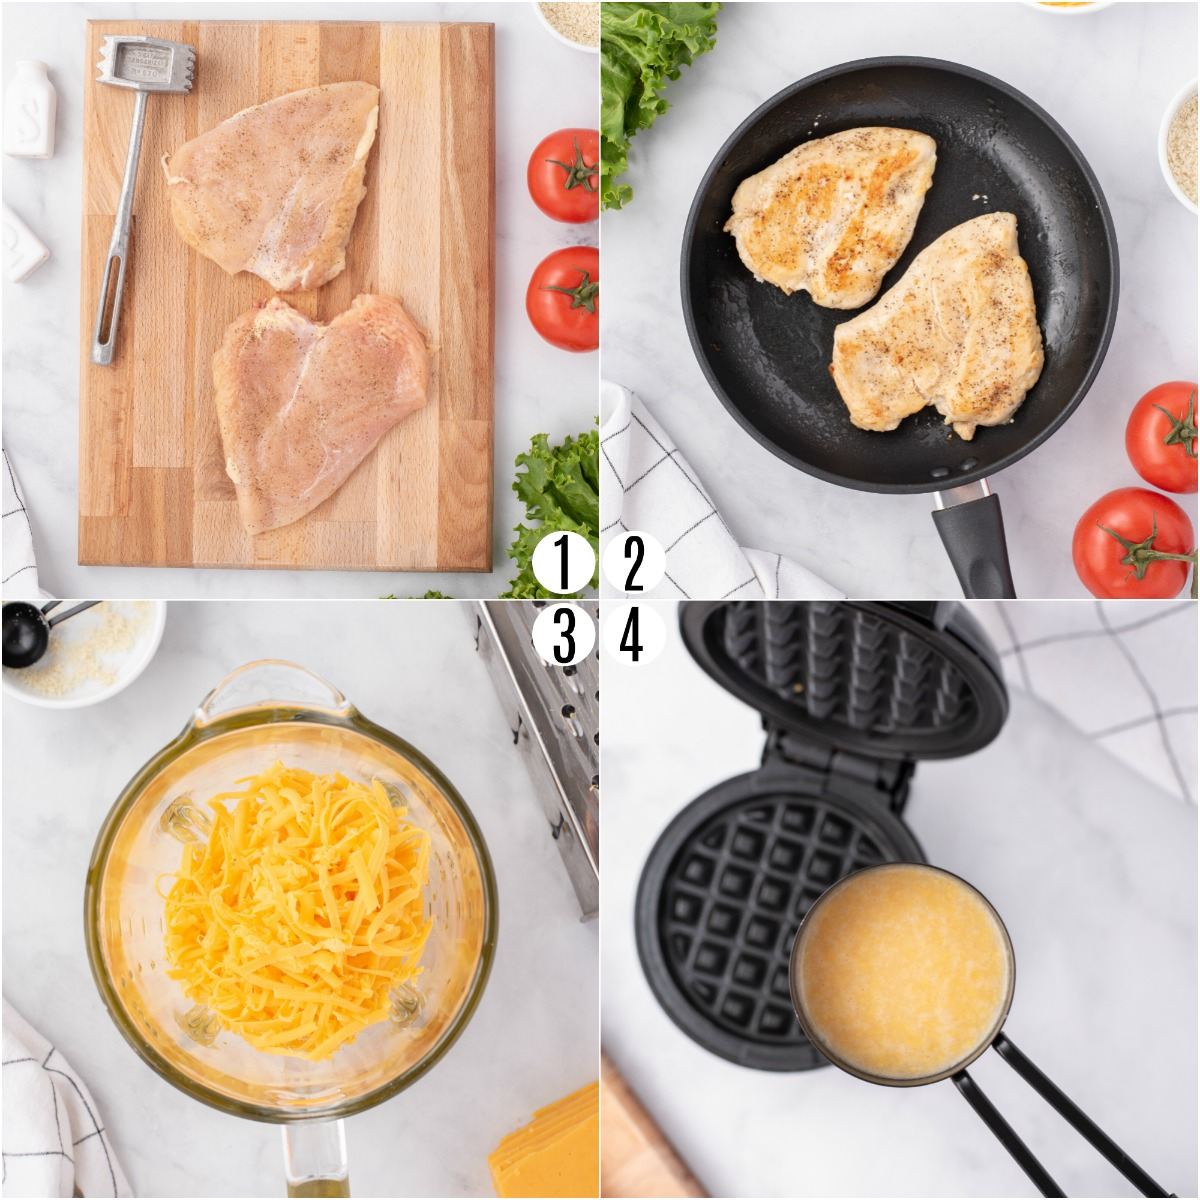 Step by step photos showing how to cook chicken and chaffles.